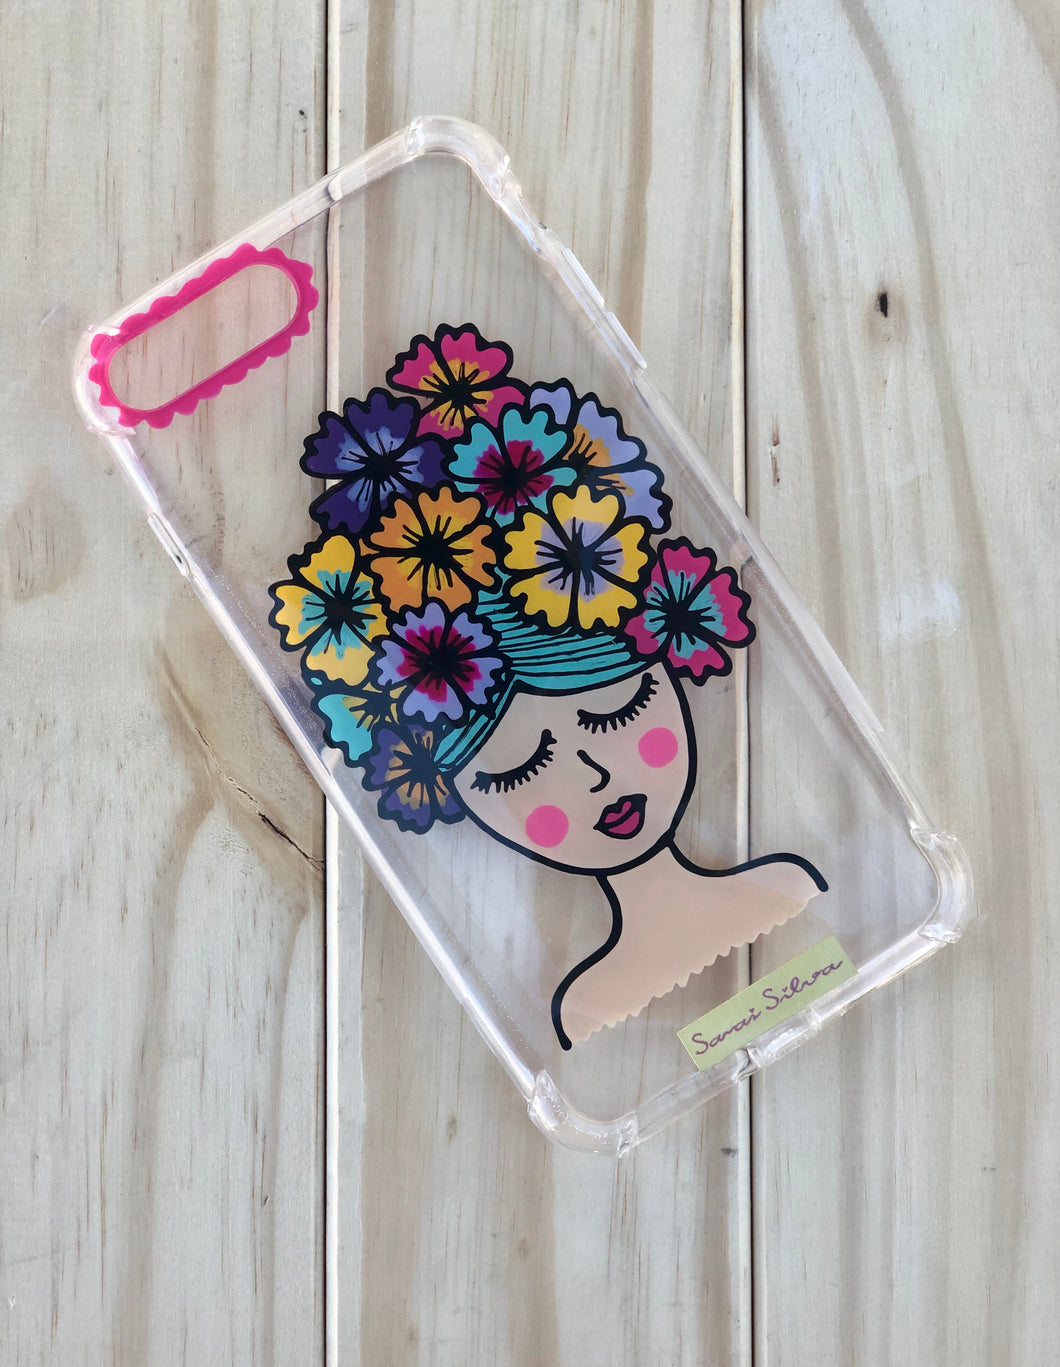 Muñeca iPhone 7plus/8plus case